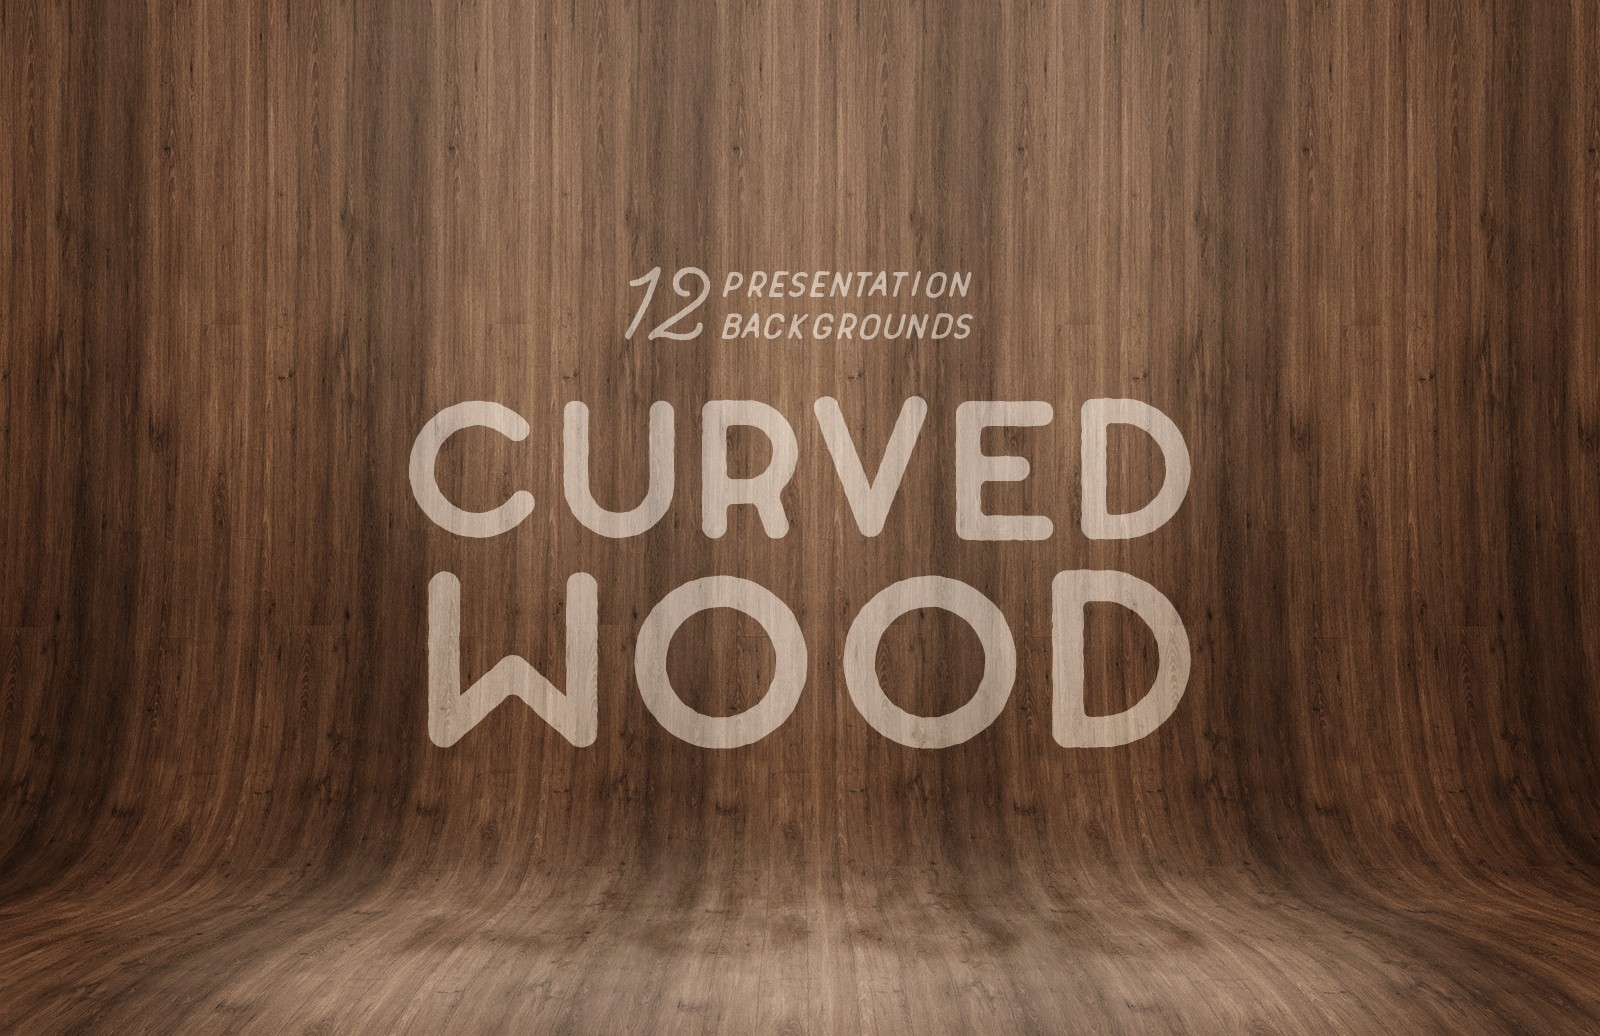 Curved  Wood  Presentation  Backgrounds  Preview 1B